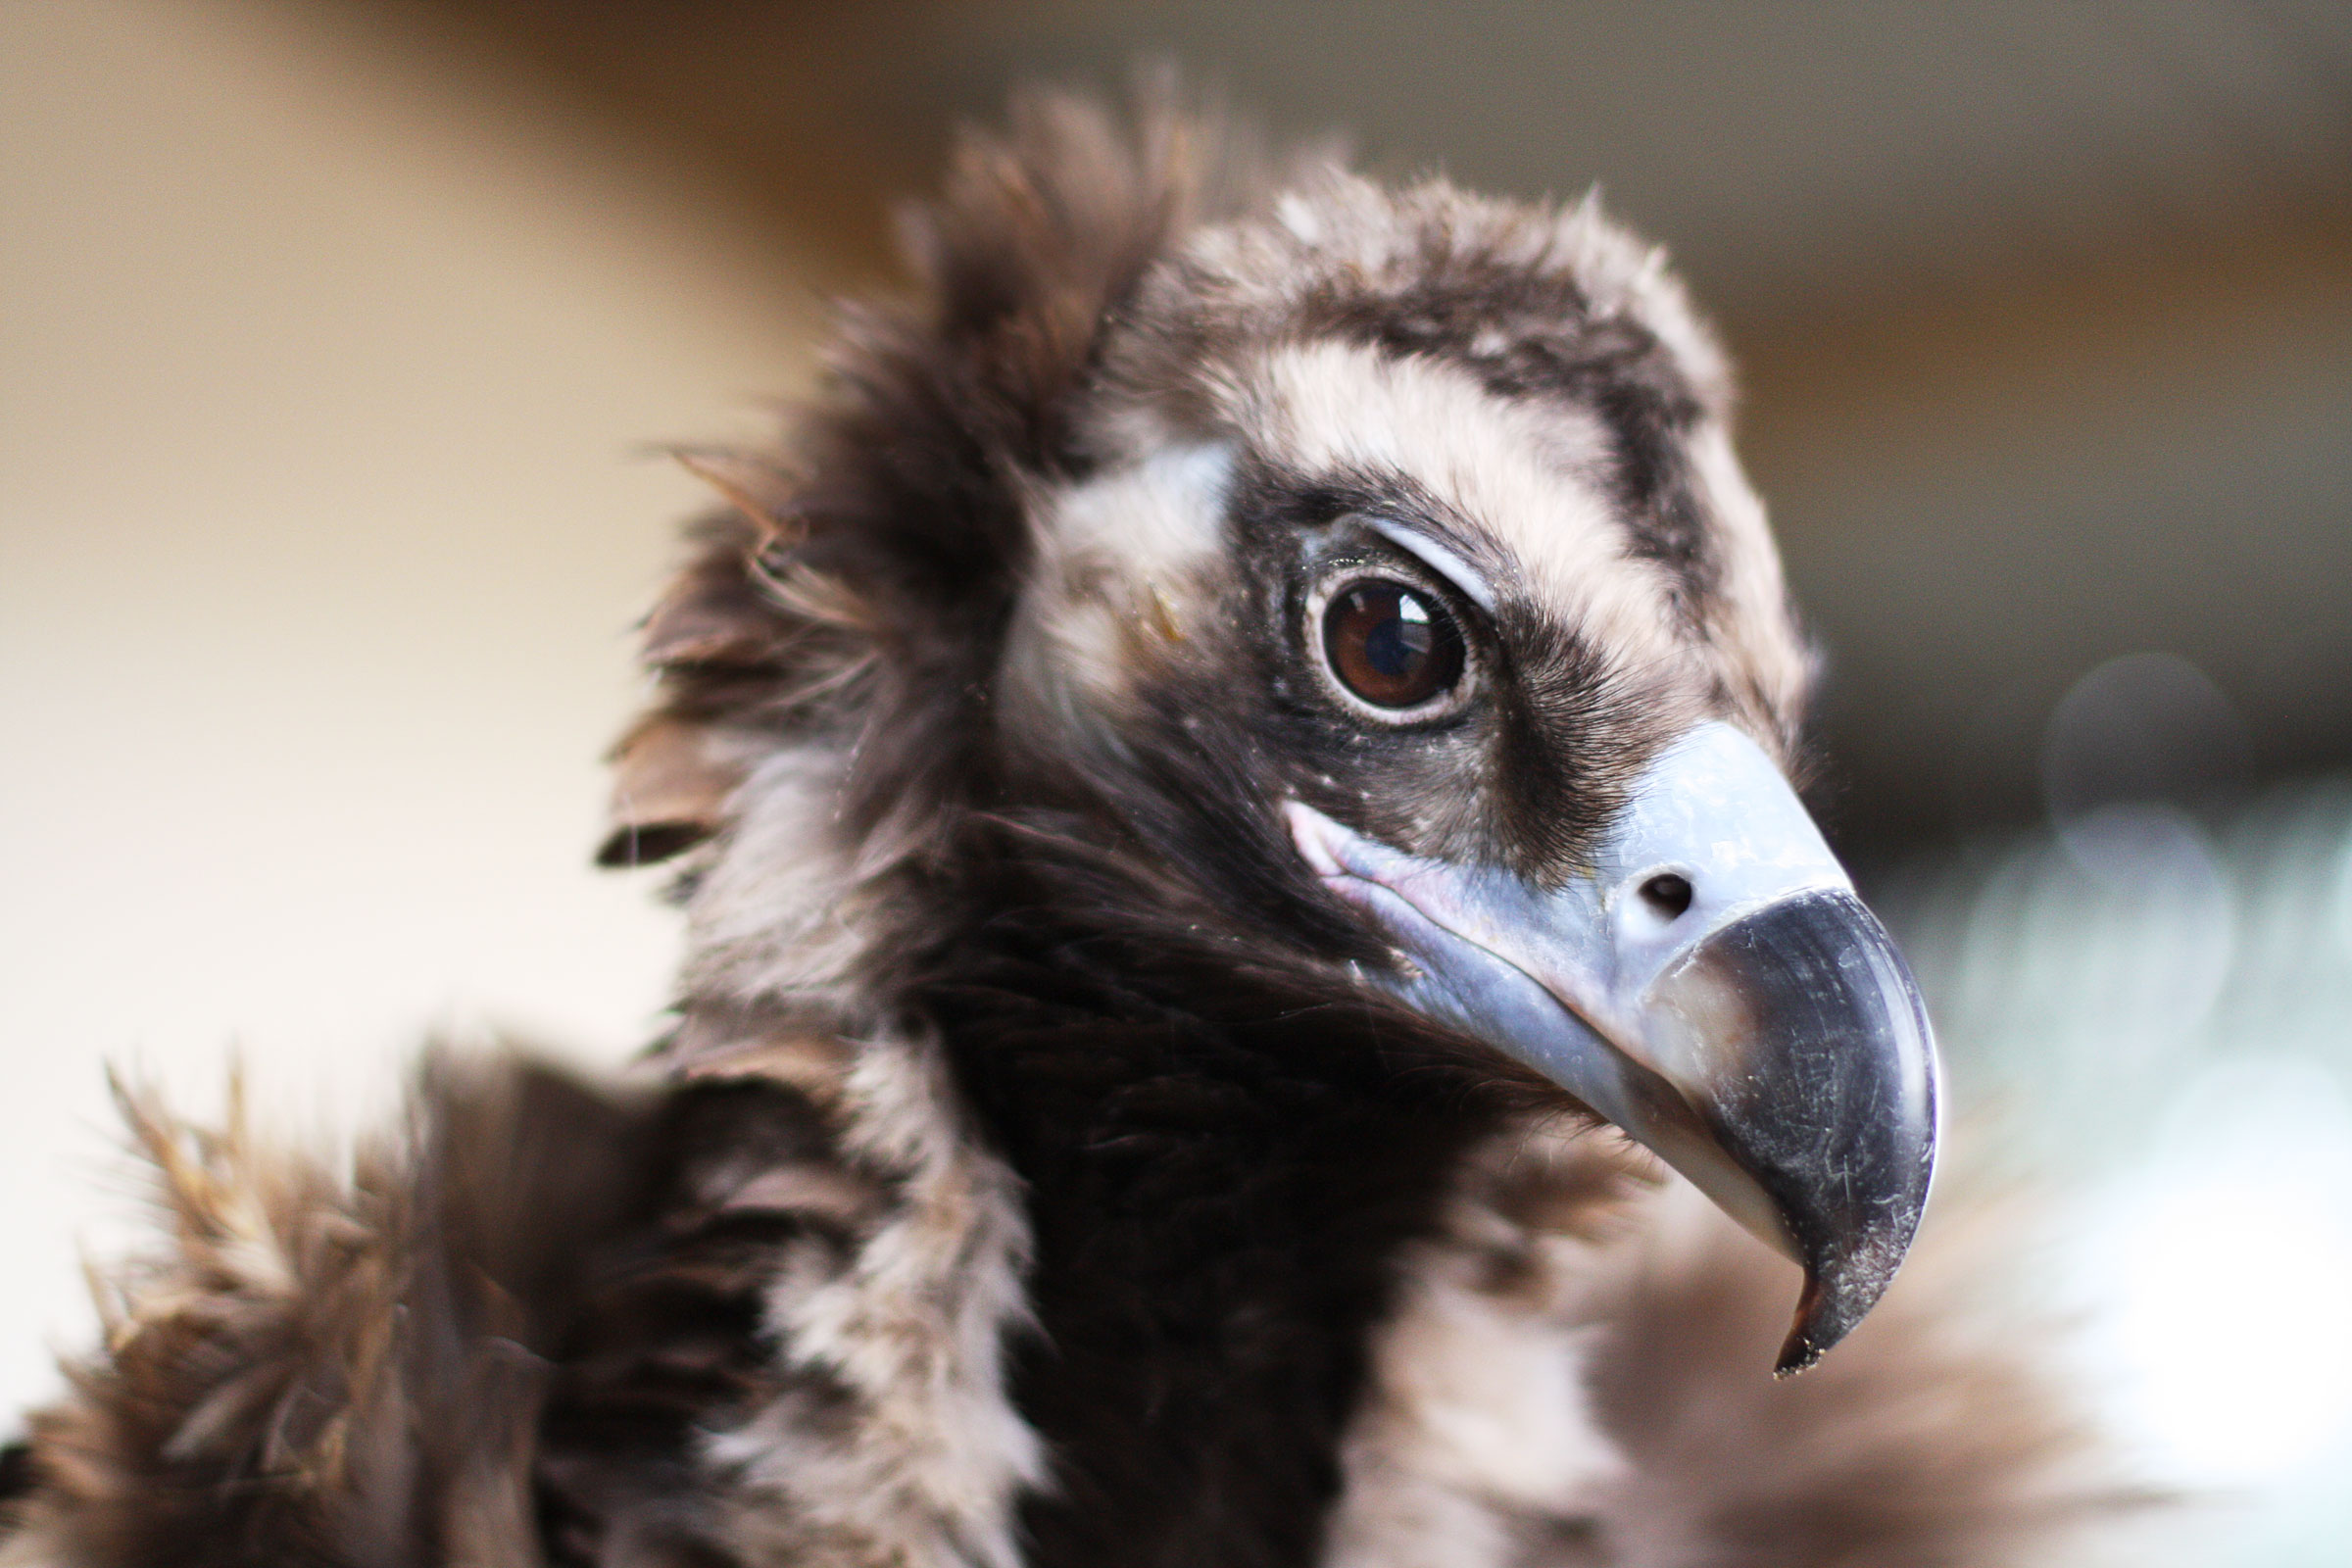 Bernard the captive-bred Cinereous Vulture is nearing his 20th birthday. The typical lifespan for his species ranges from 50 to 60 years. Adam Bloch